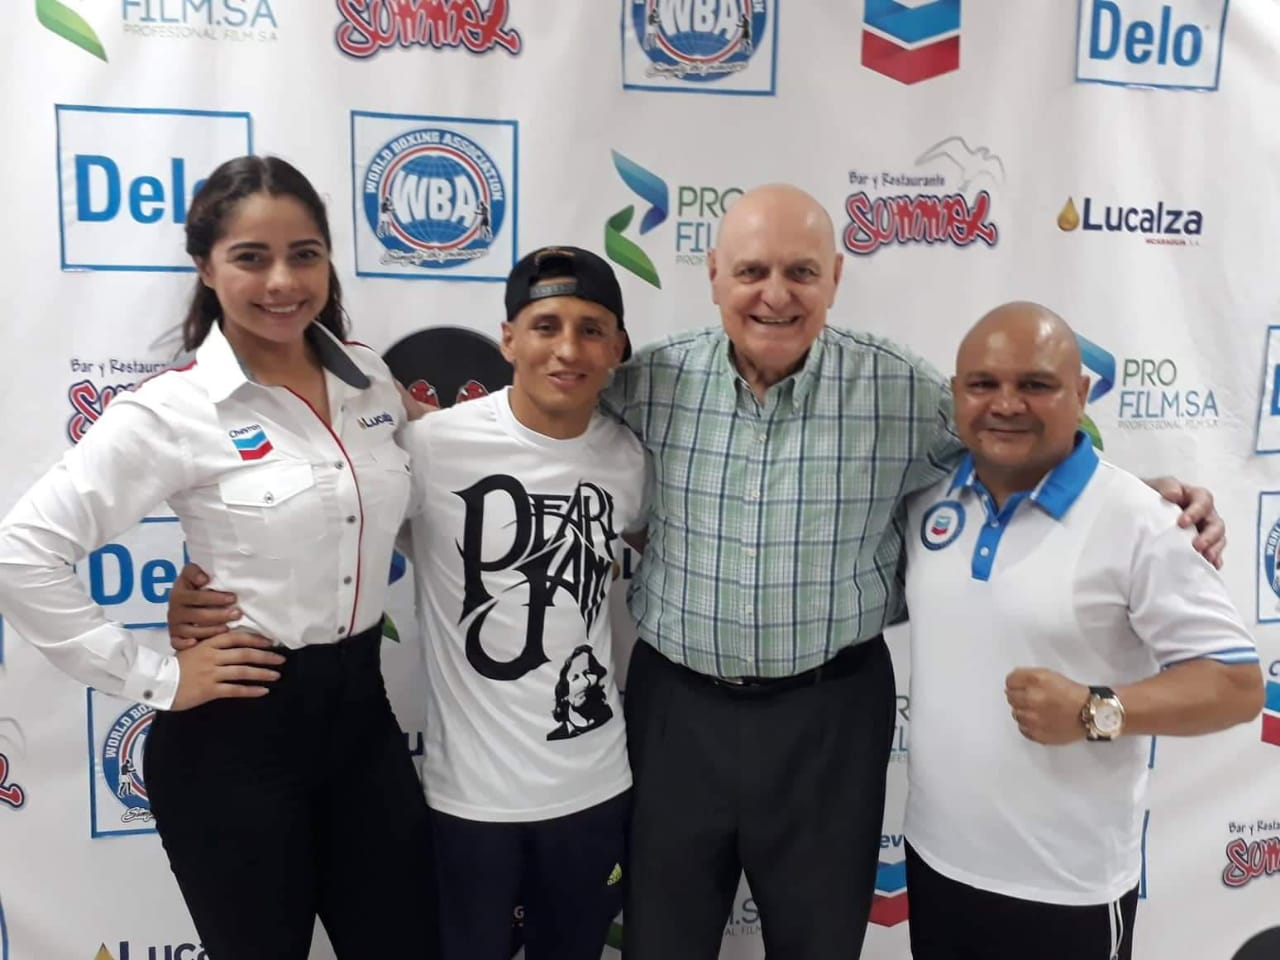 Nicaragua will host a great evening of boxing